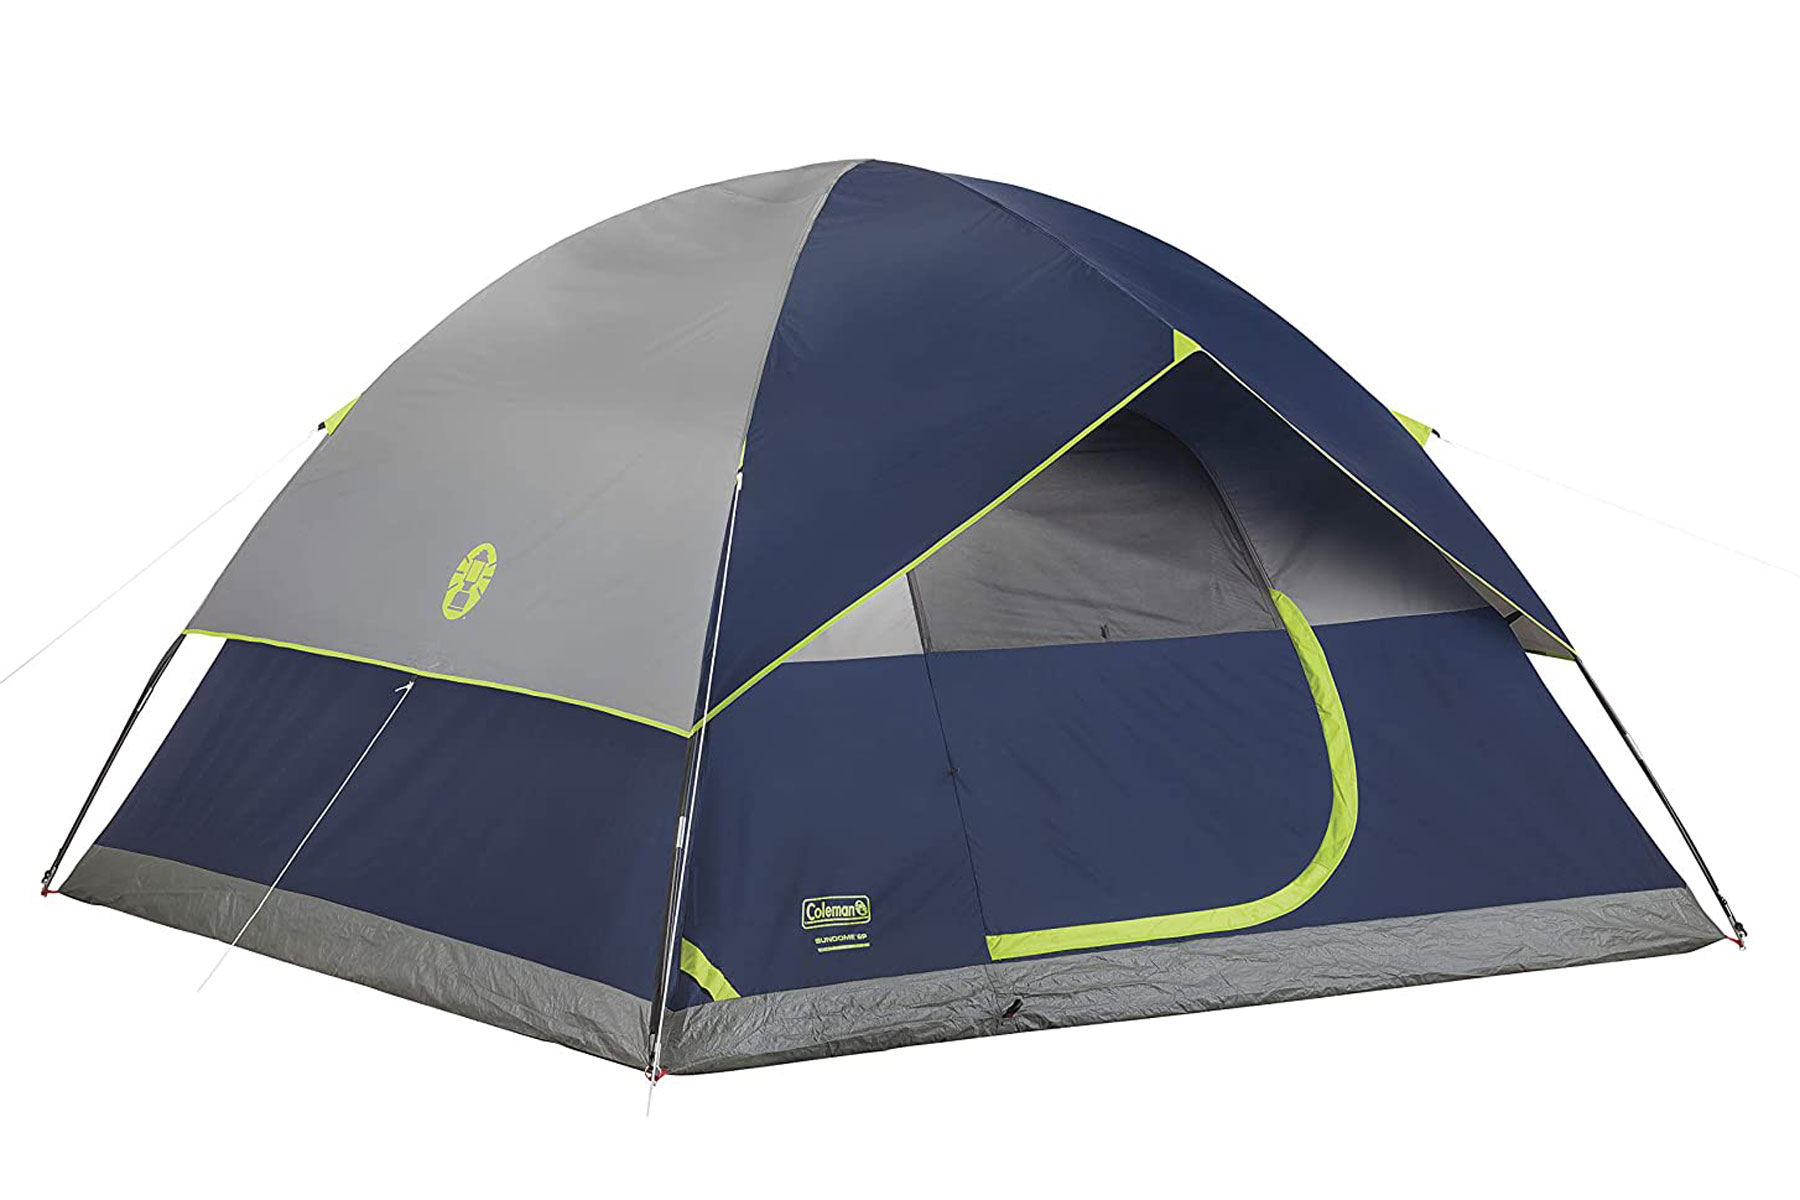 Navy and green camping tent